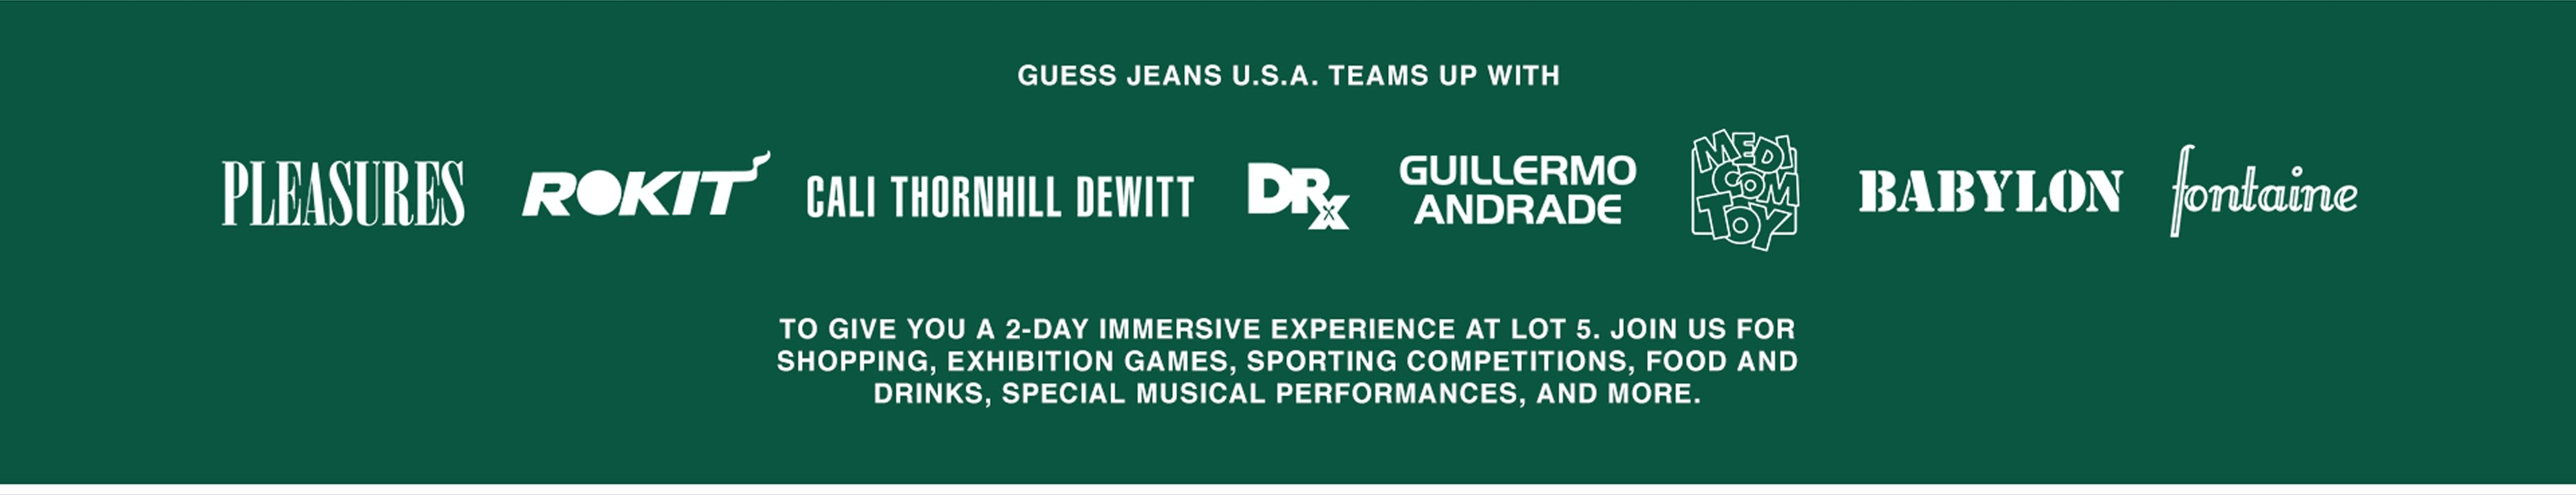 GUESS JEANS U.S.A Teams up with